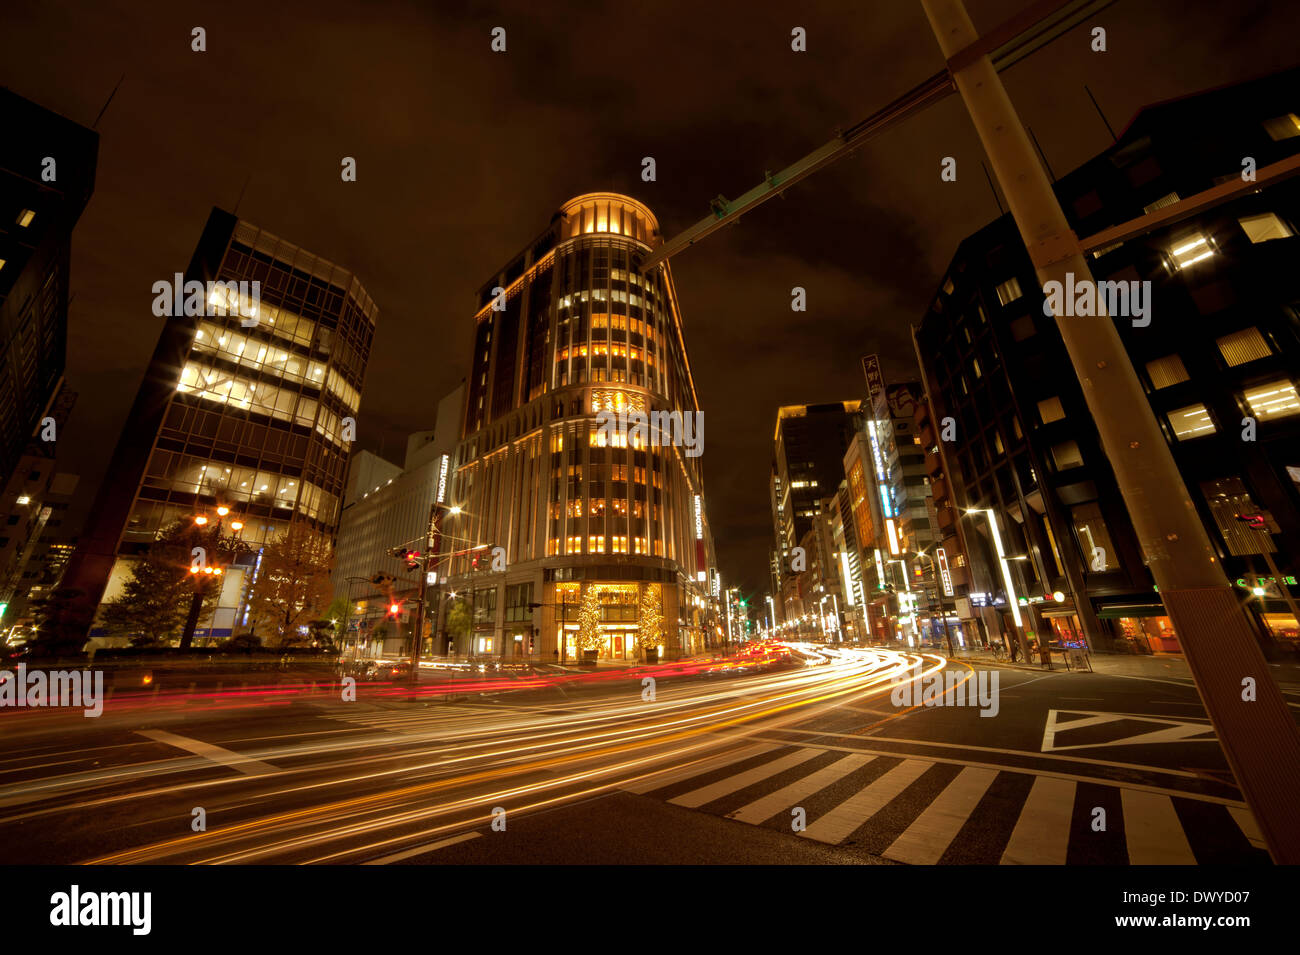 street view at night in tokyo japan stock photo 67600407